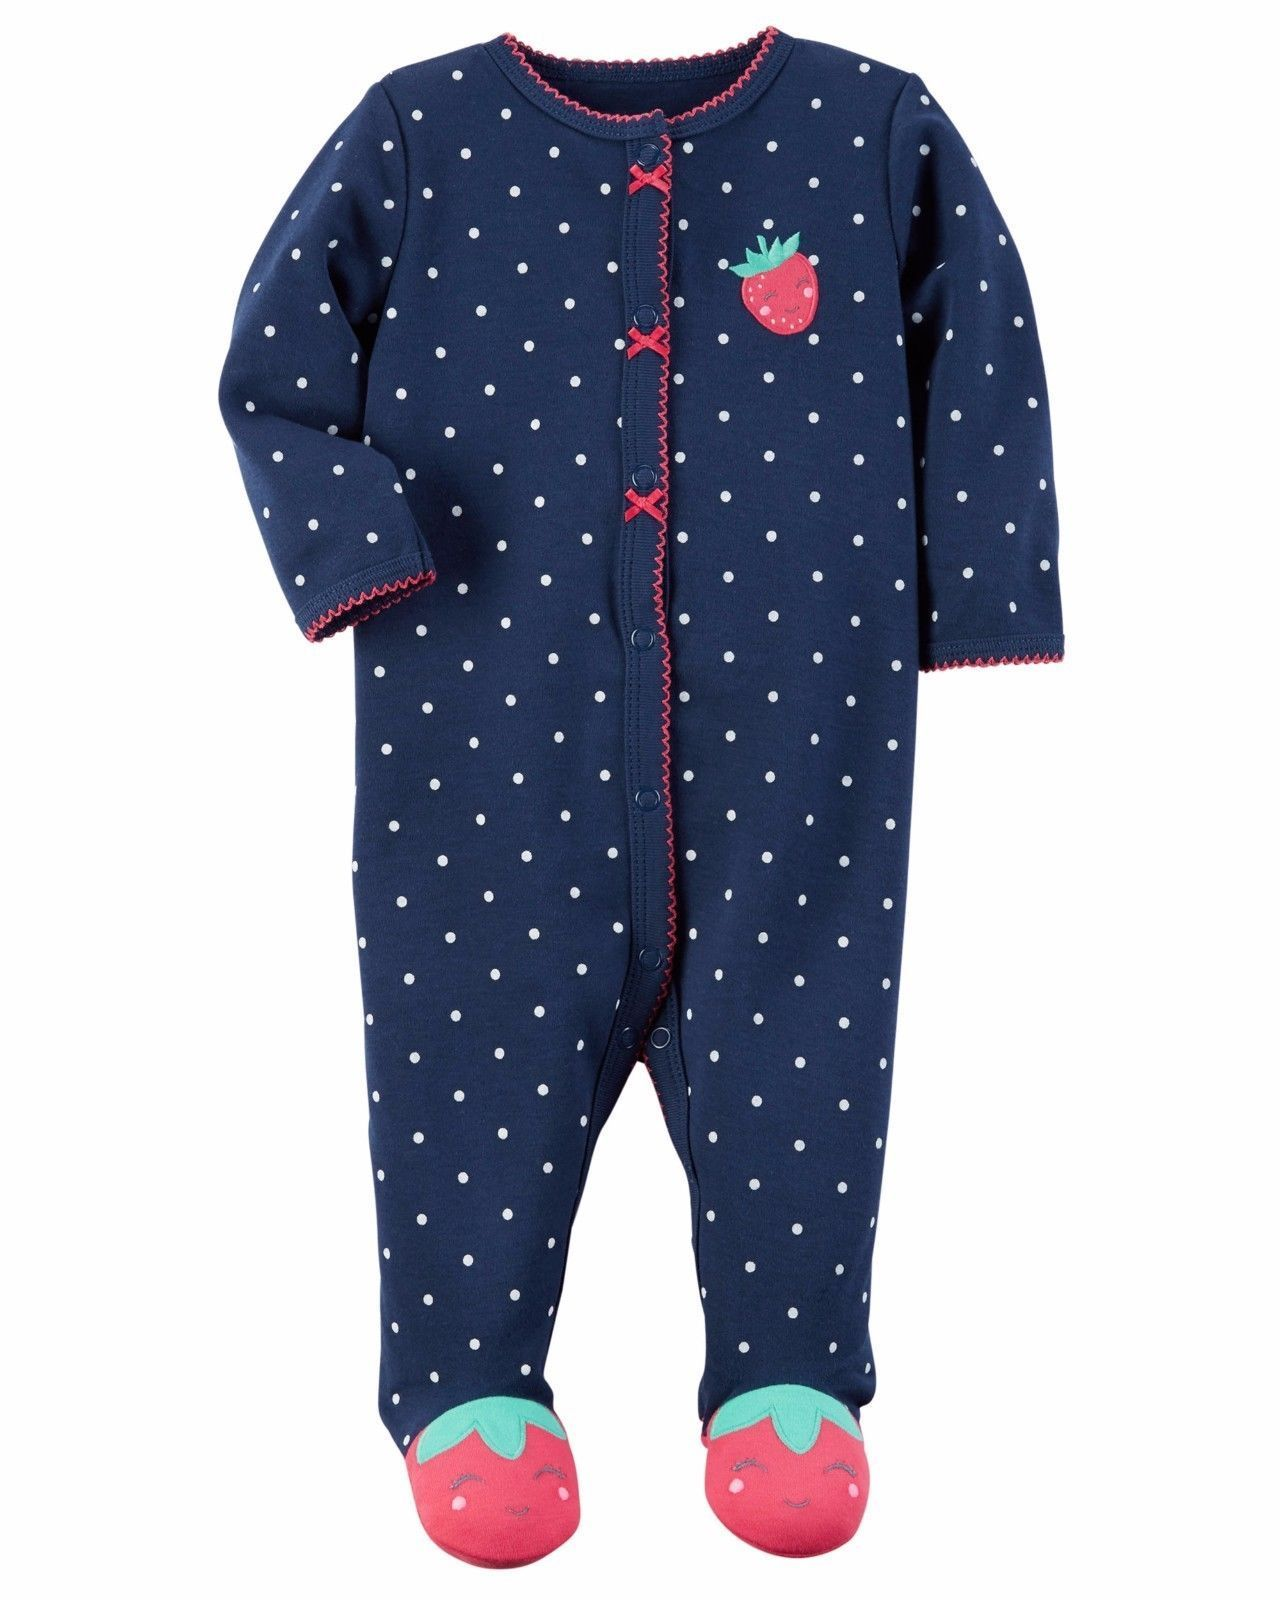 1413633fd Nwt Girls Carter sborn 3 6 9 Months Sleeper Sleep And Play ...